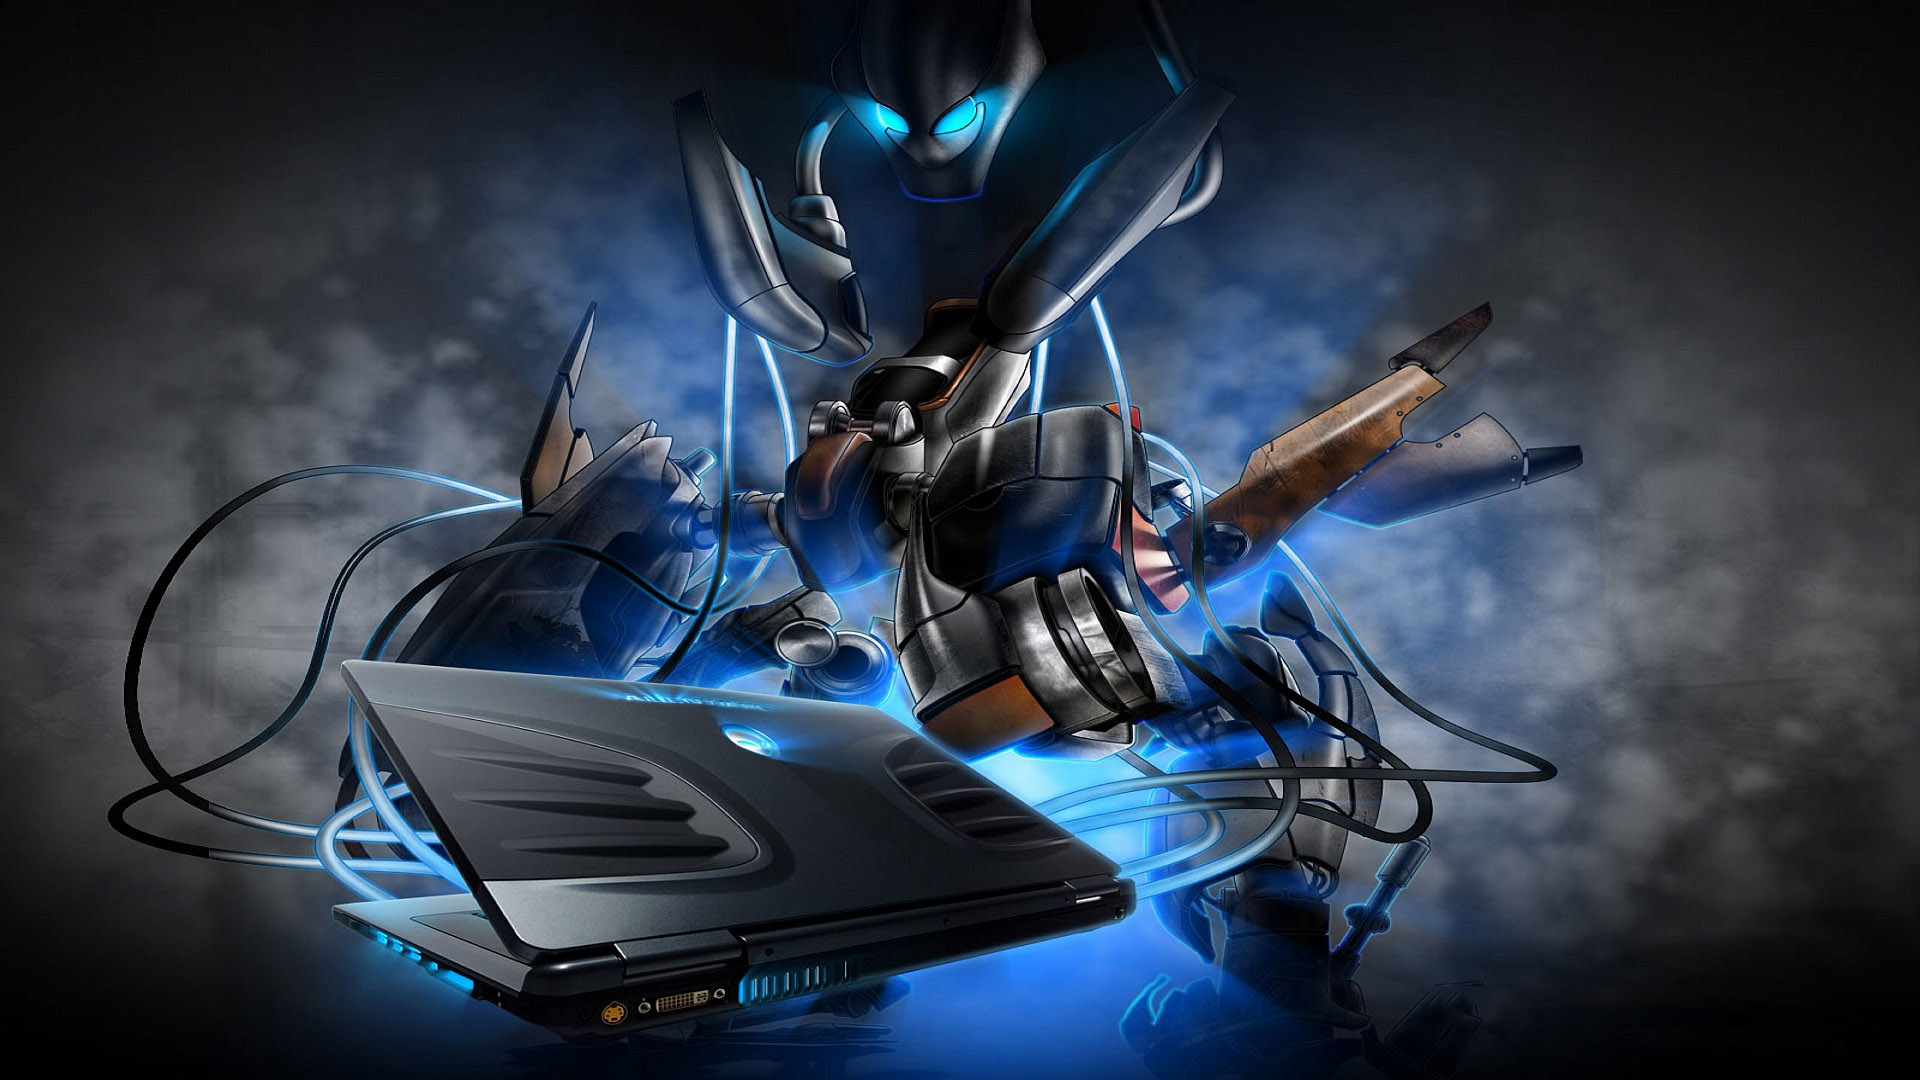 3d alienware mech hd wallpaper wallpapers55com   Best Wallpapers 1920x1080